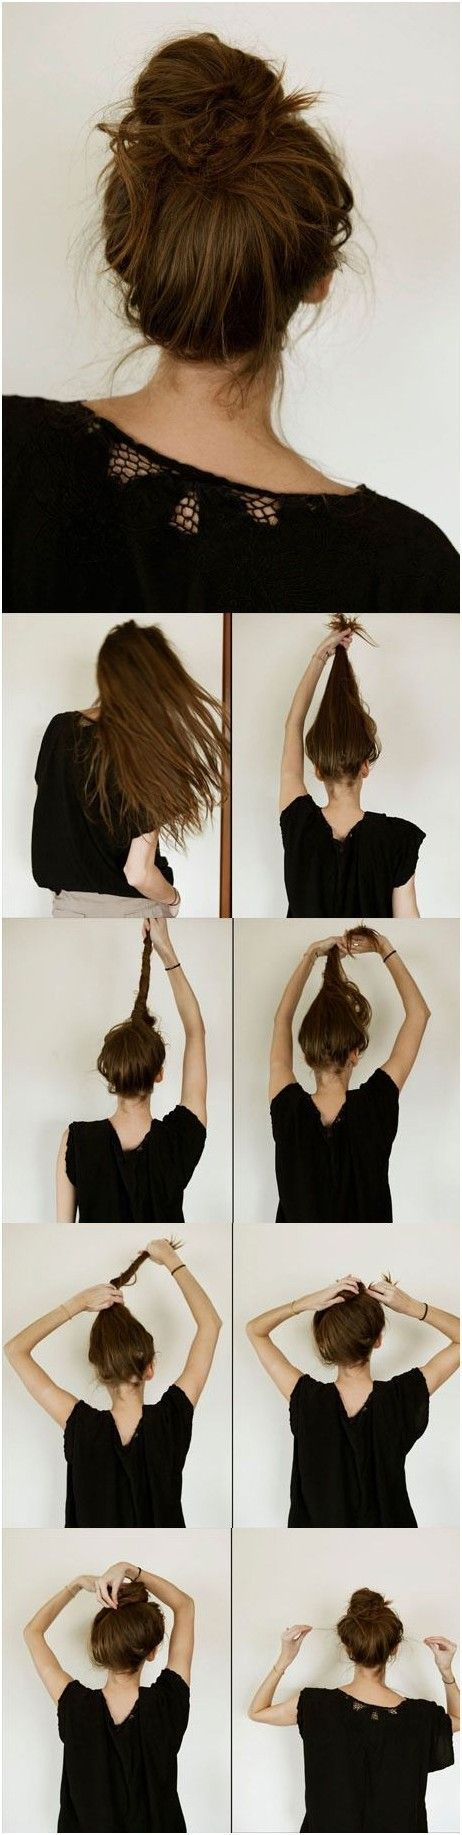 Chic Lazy Bun Hairstyle Tutorial